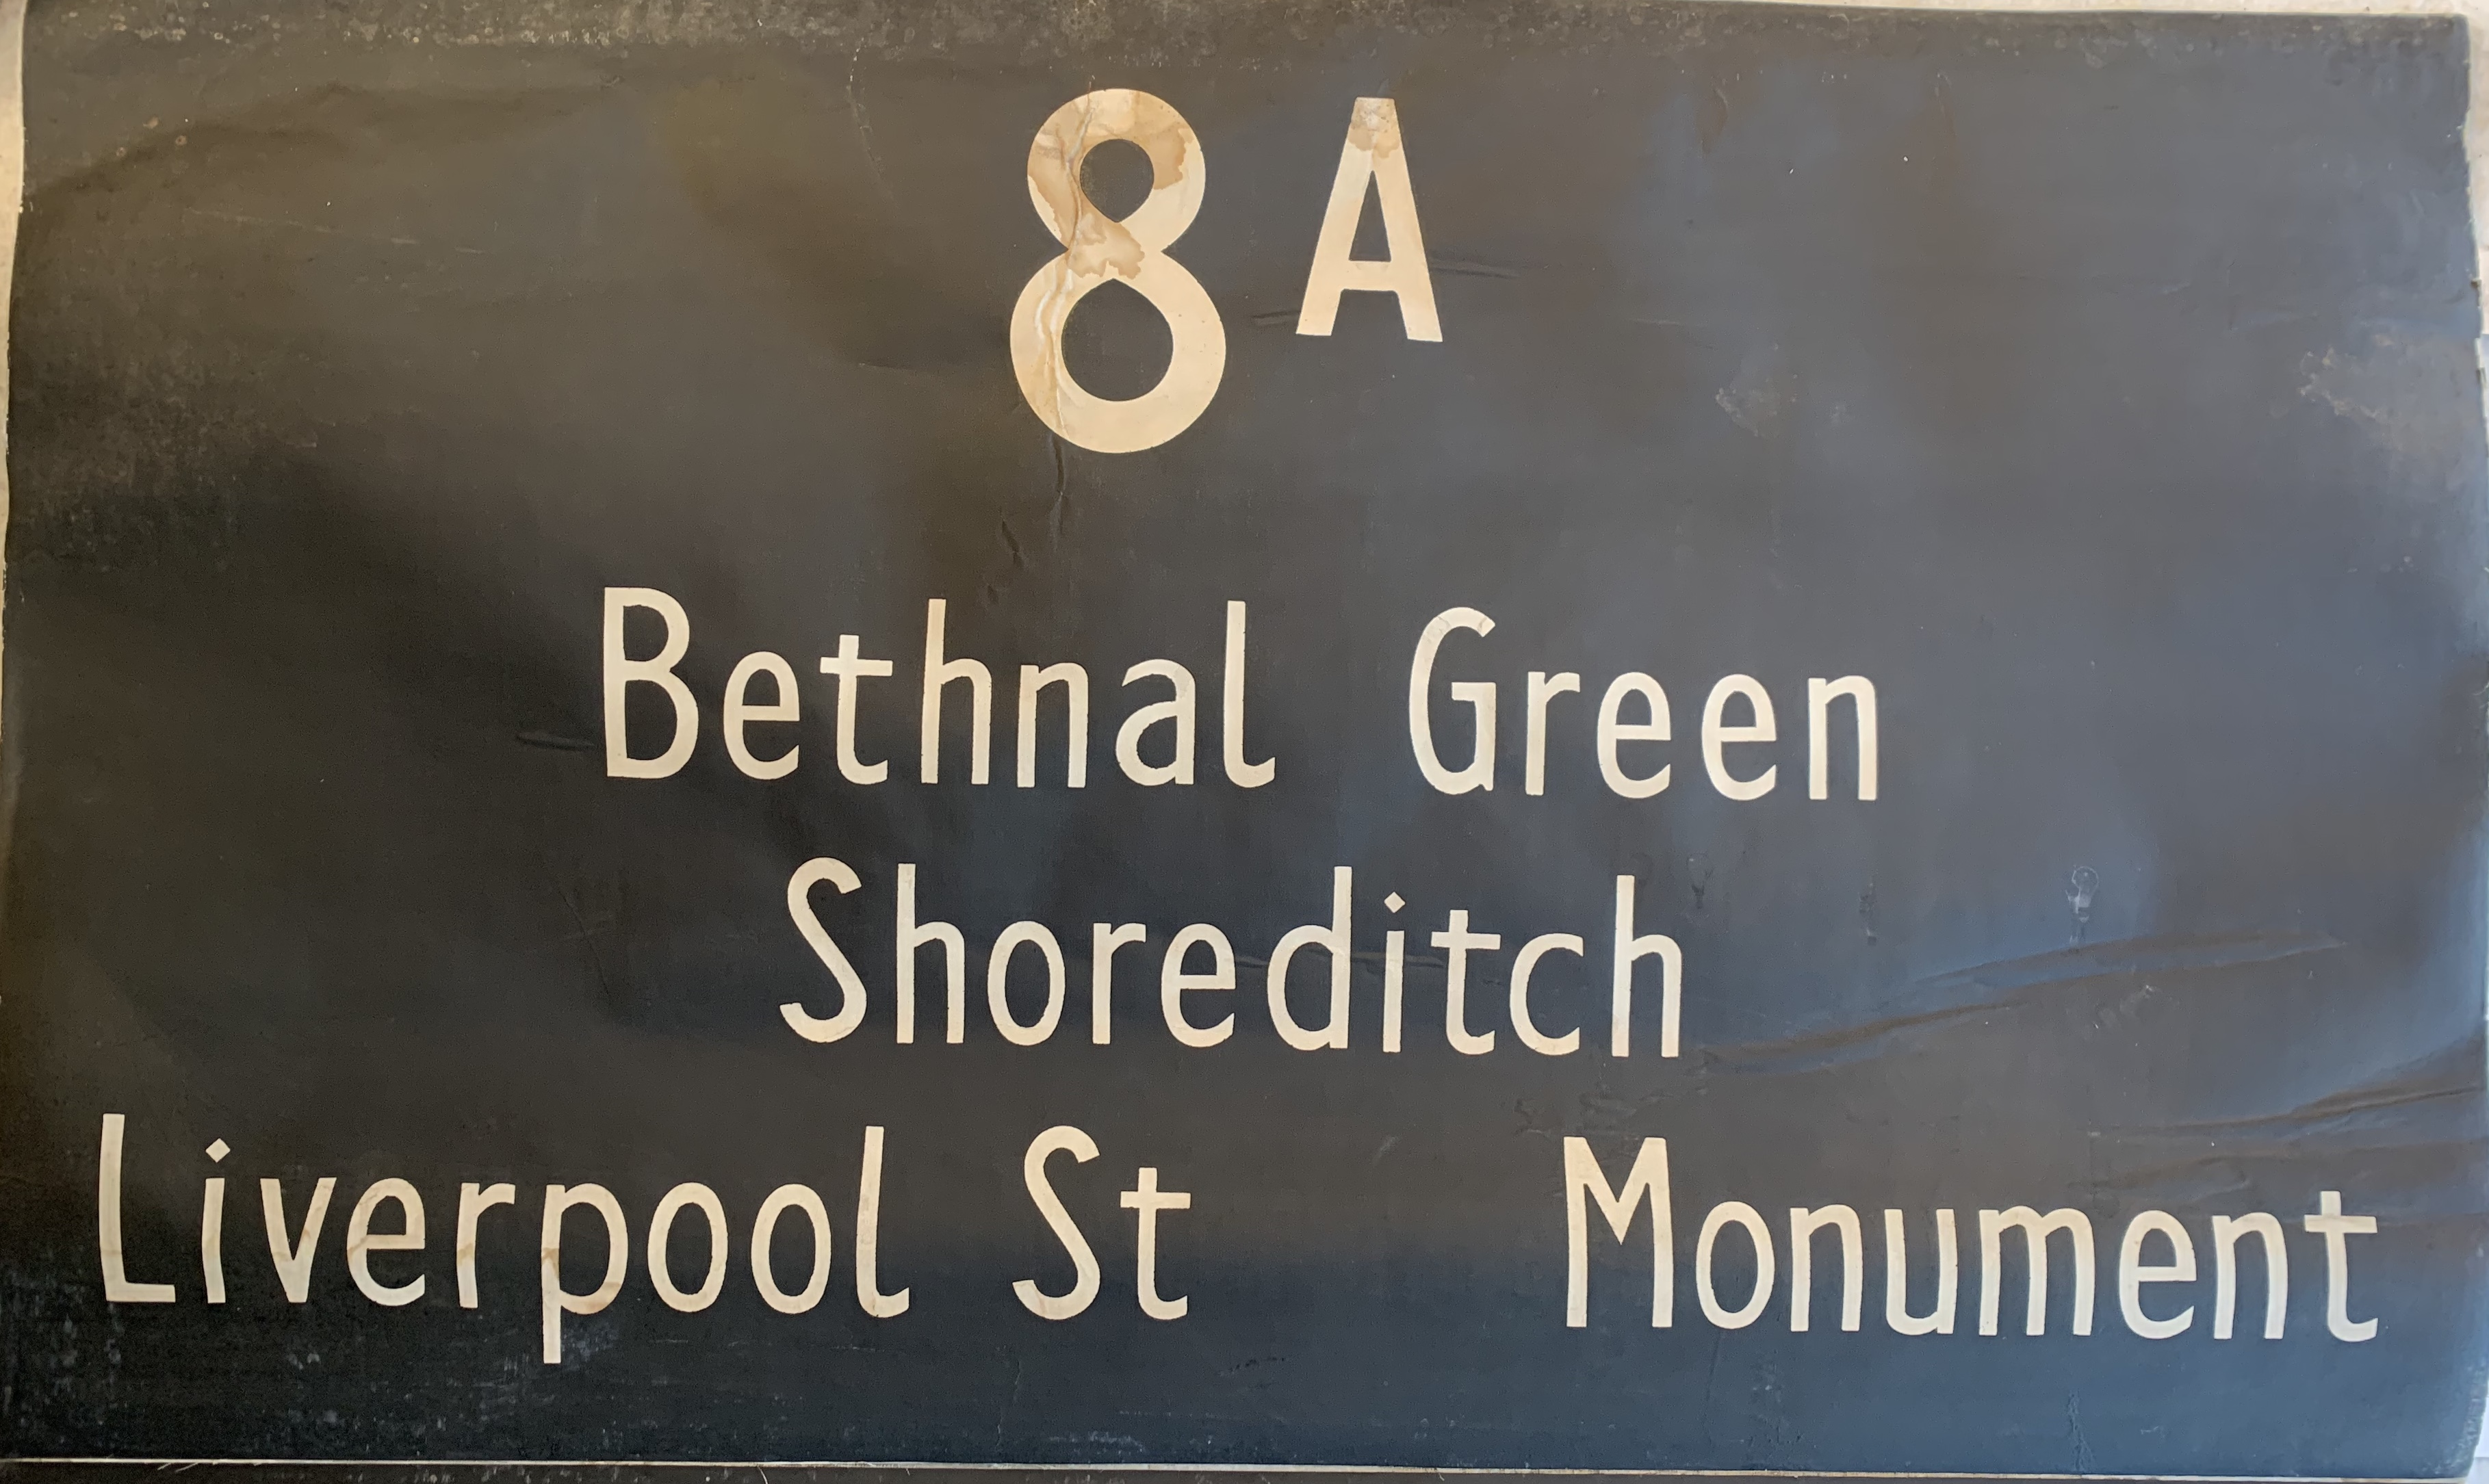 8 Bethnal Green, Shoreditch, Liverpool, Monument